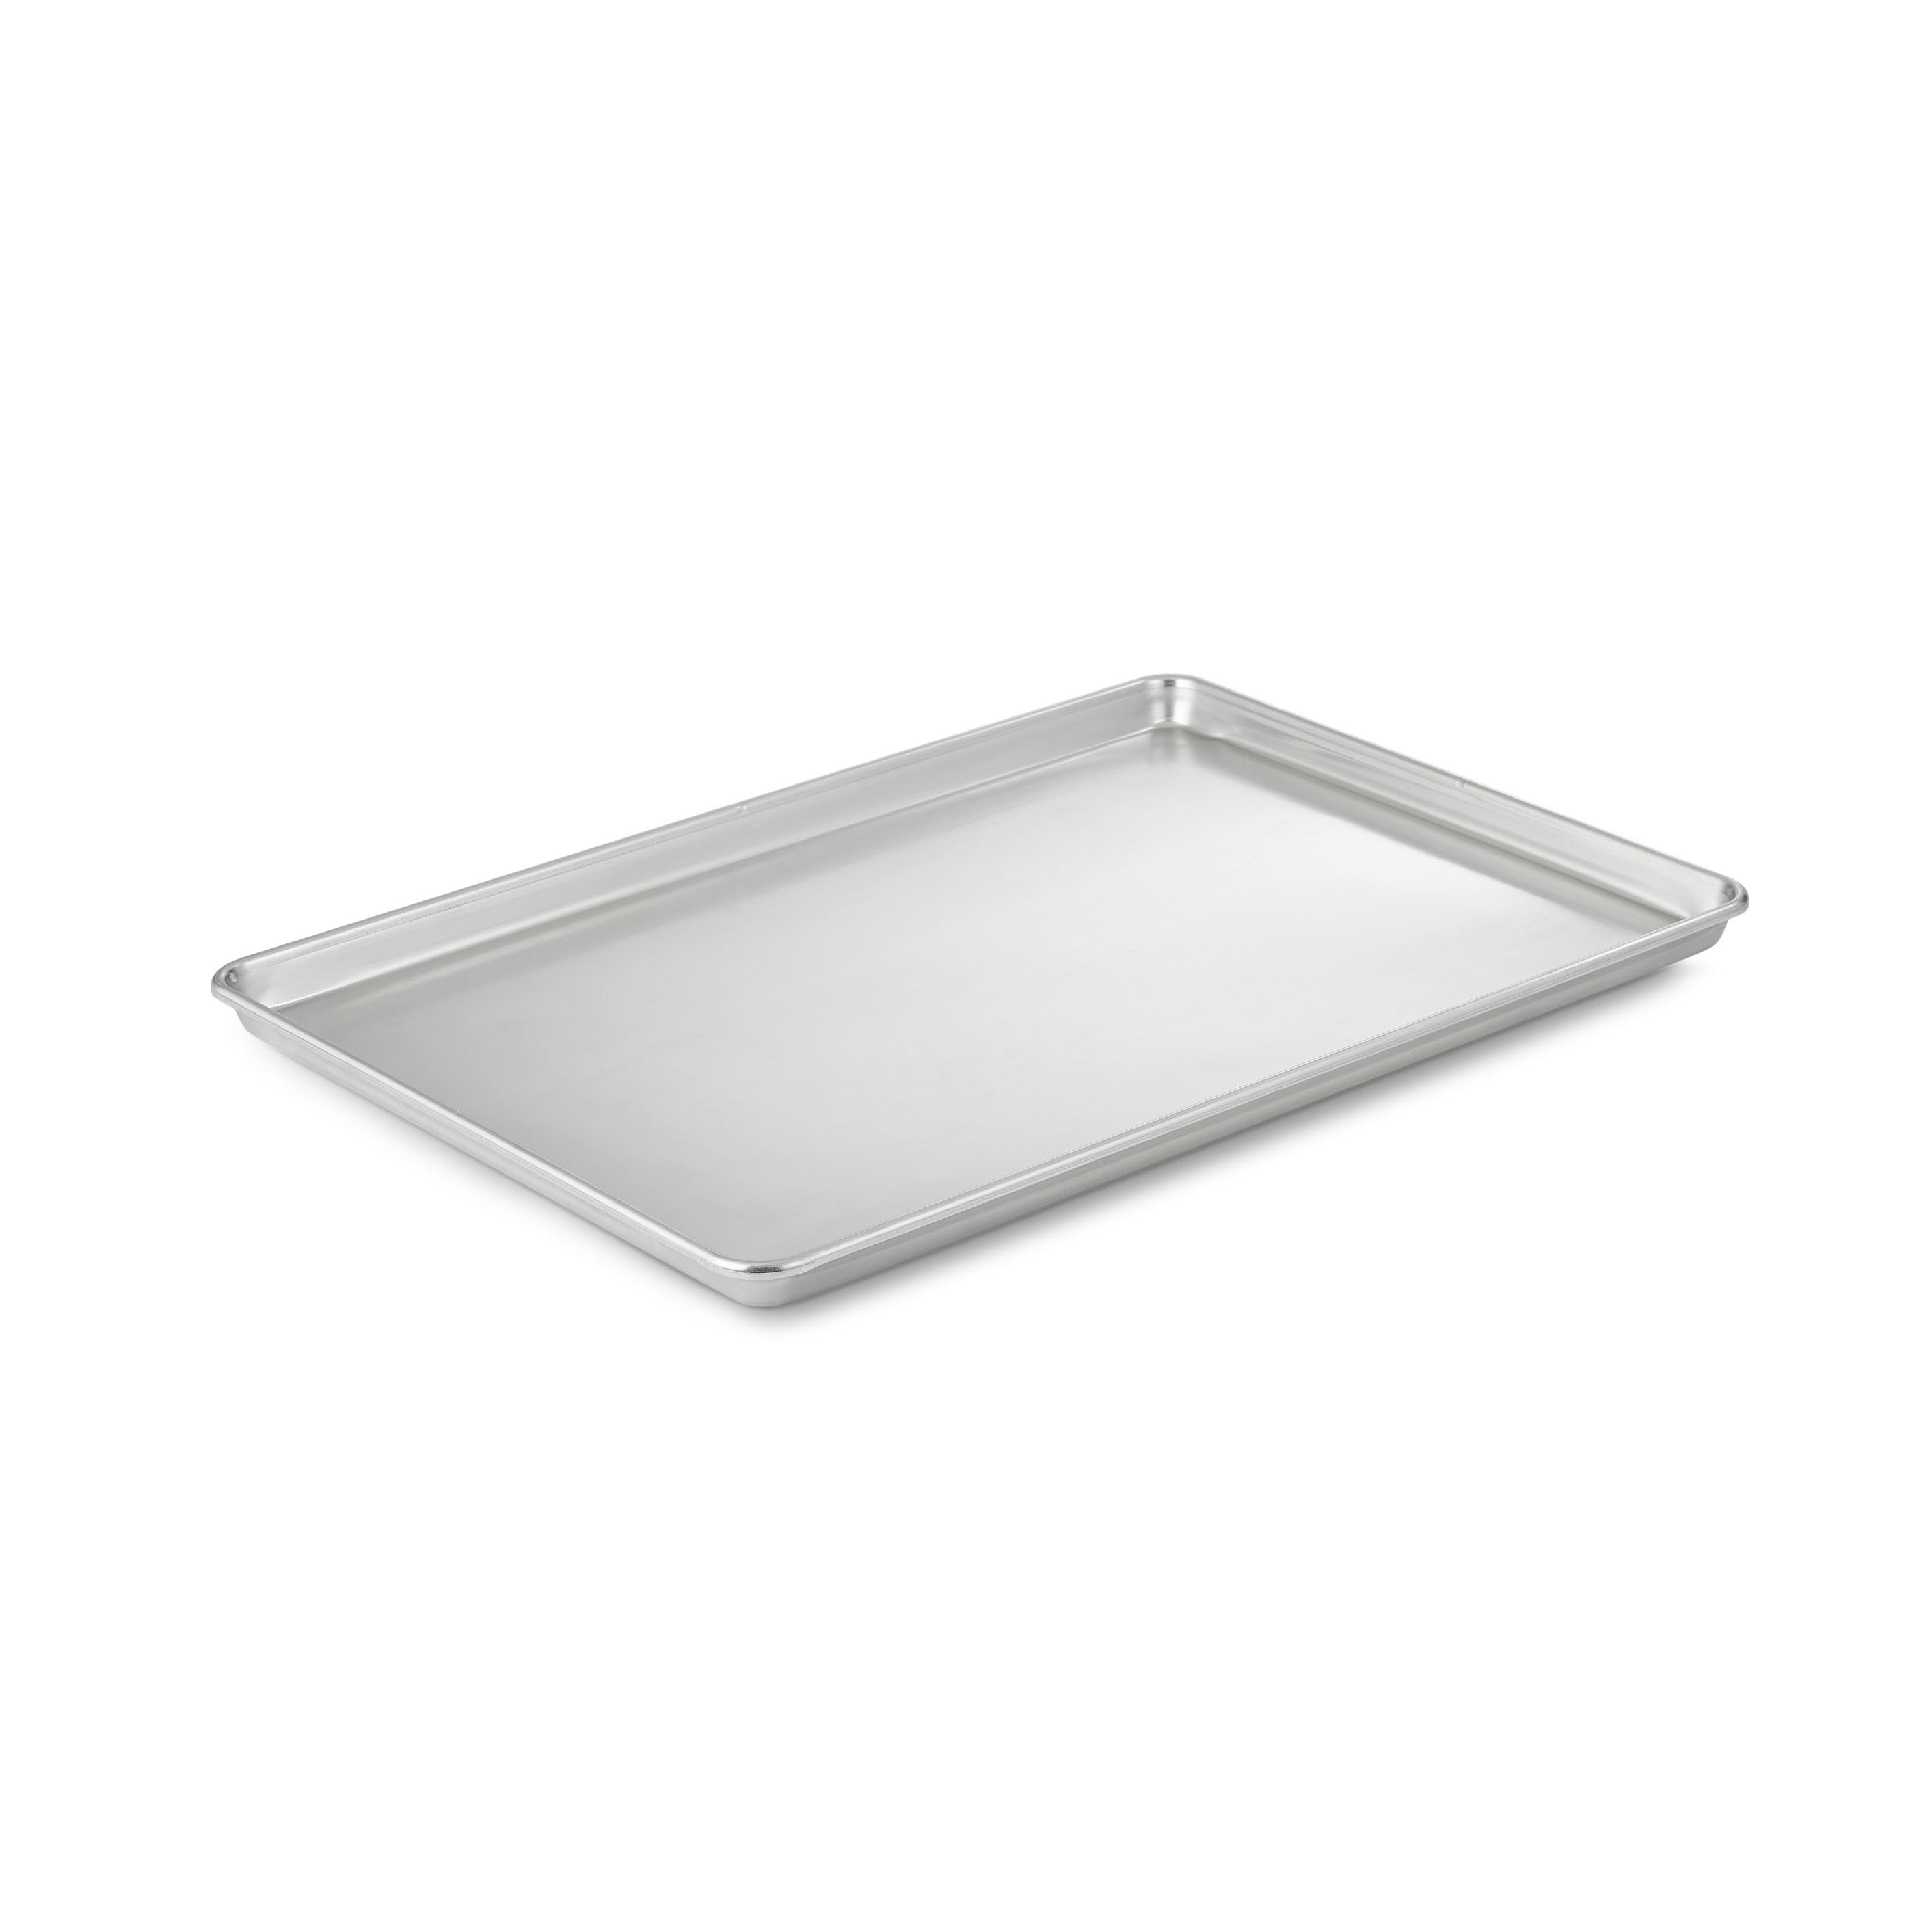 Vollrath 939002 bun / sheet pan